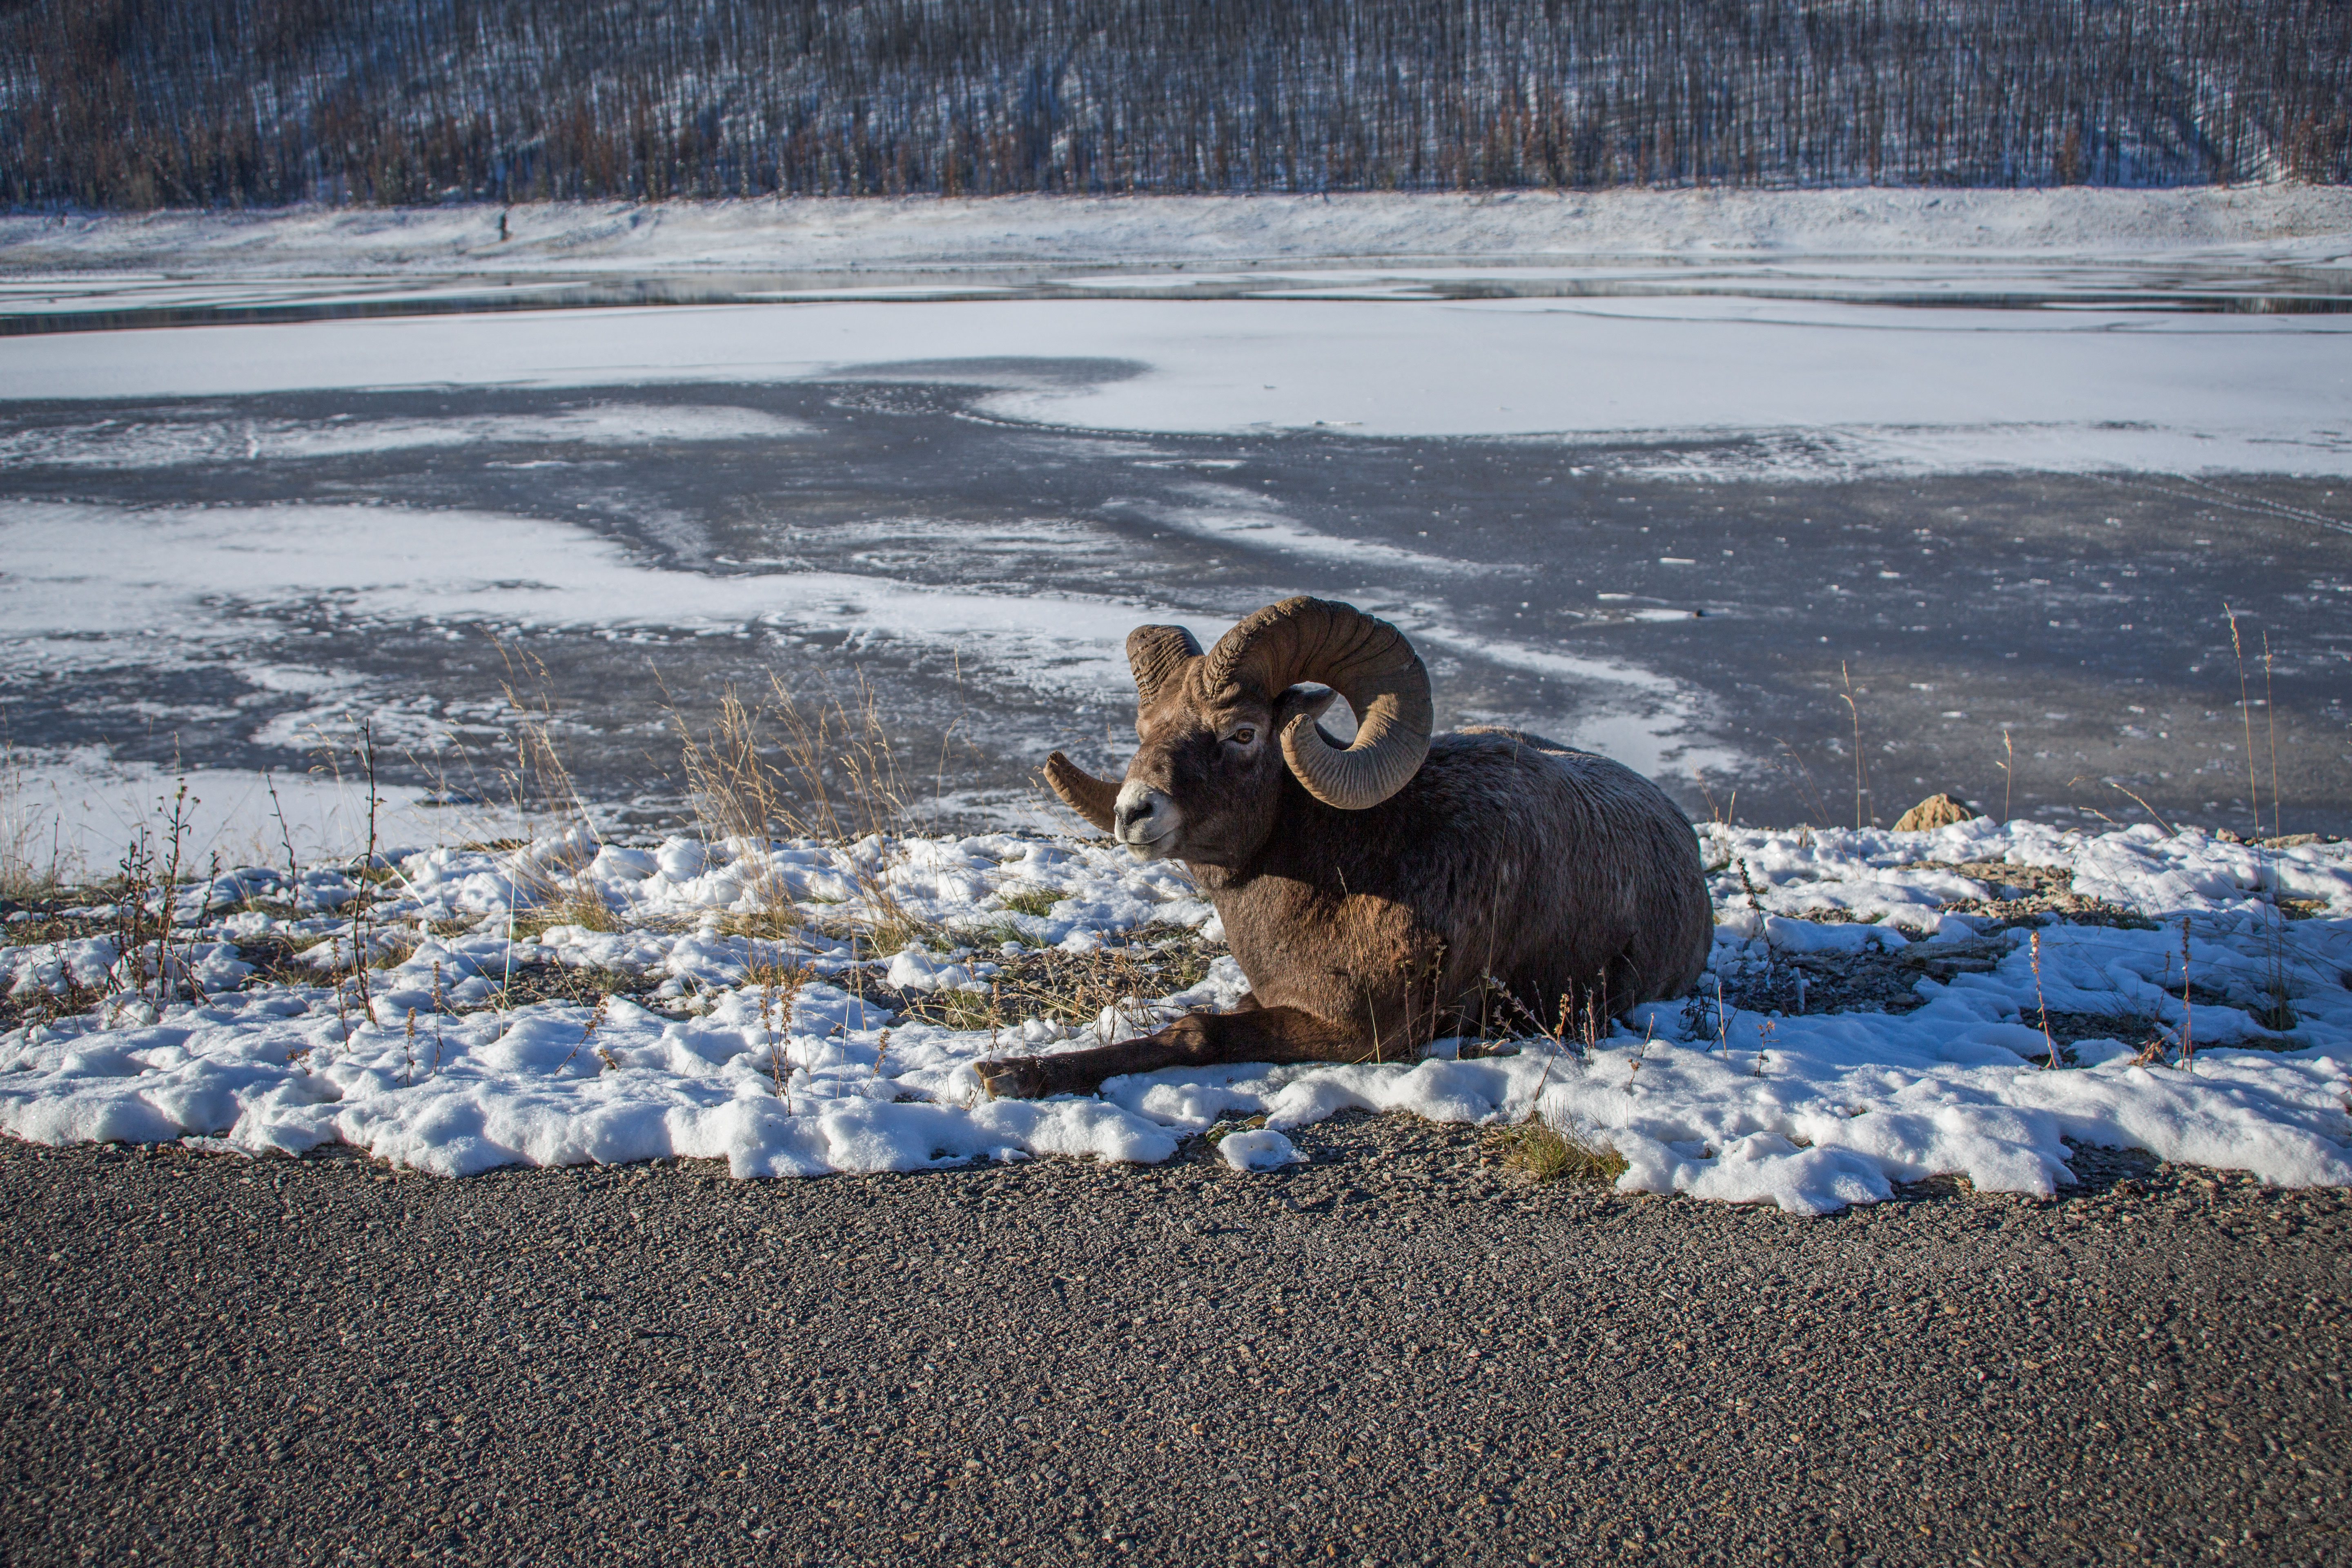 alberta, winter, Canadian winter, Bighorn sheep